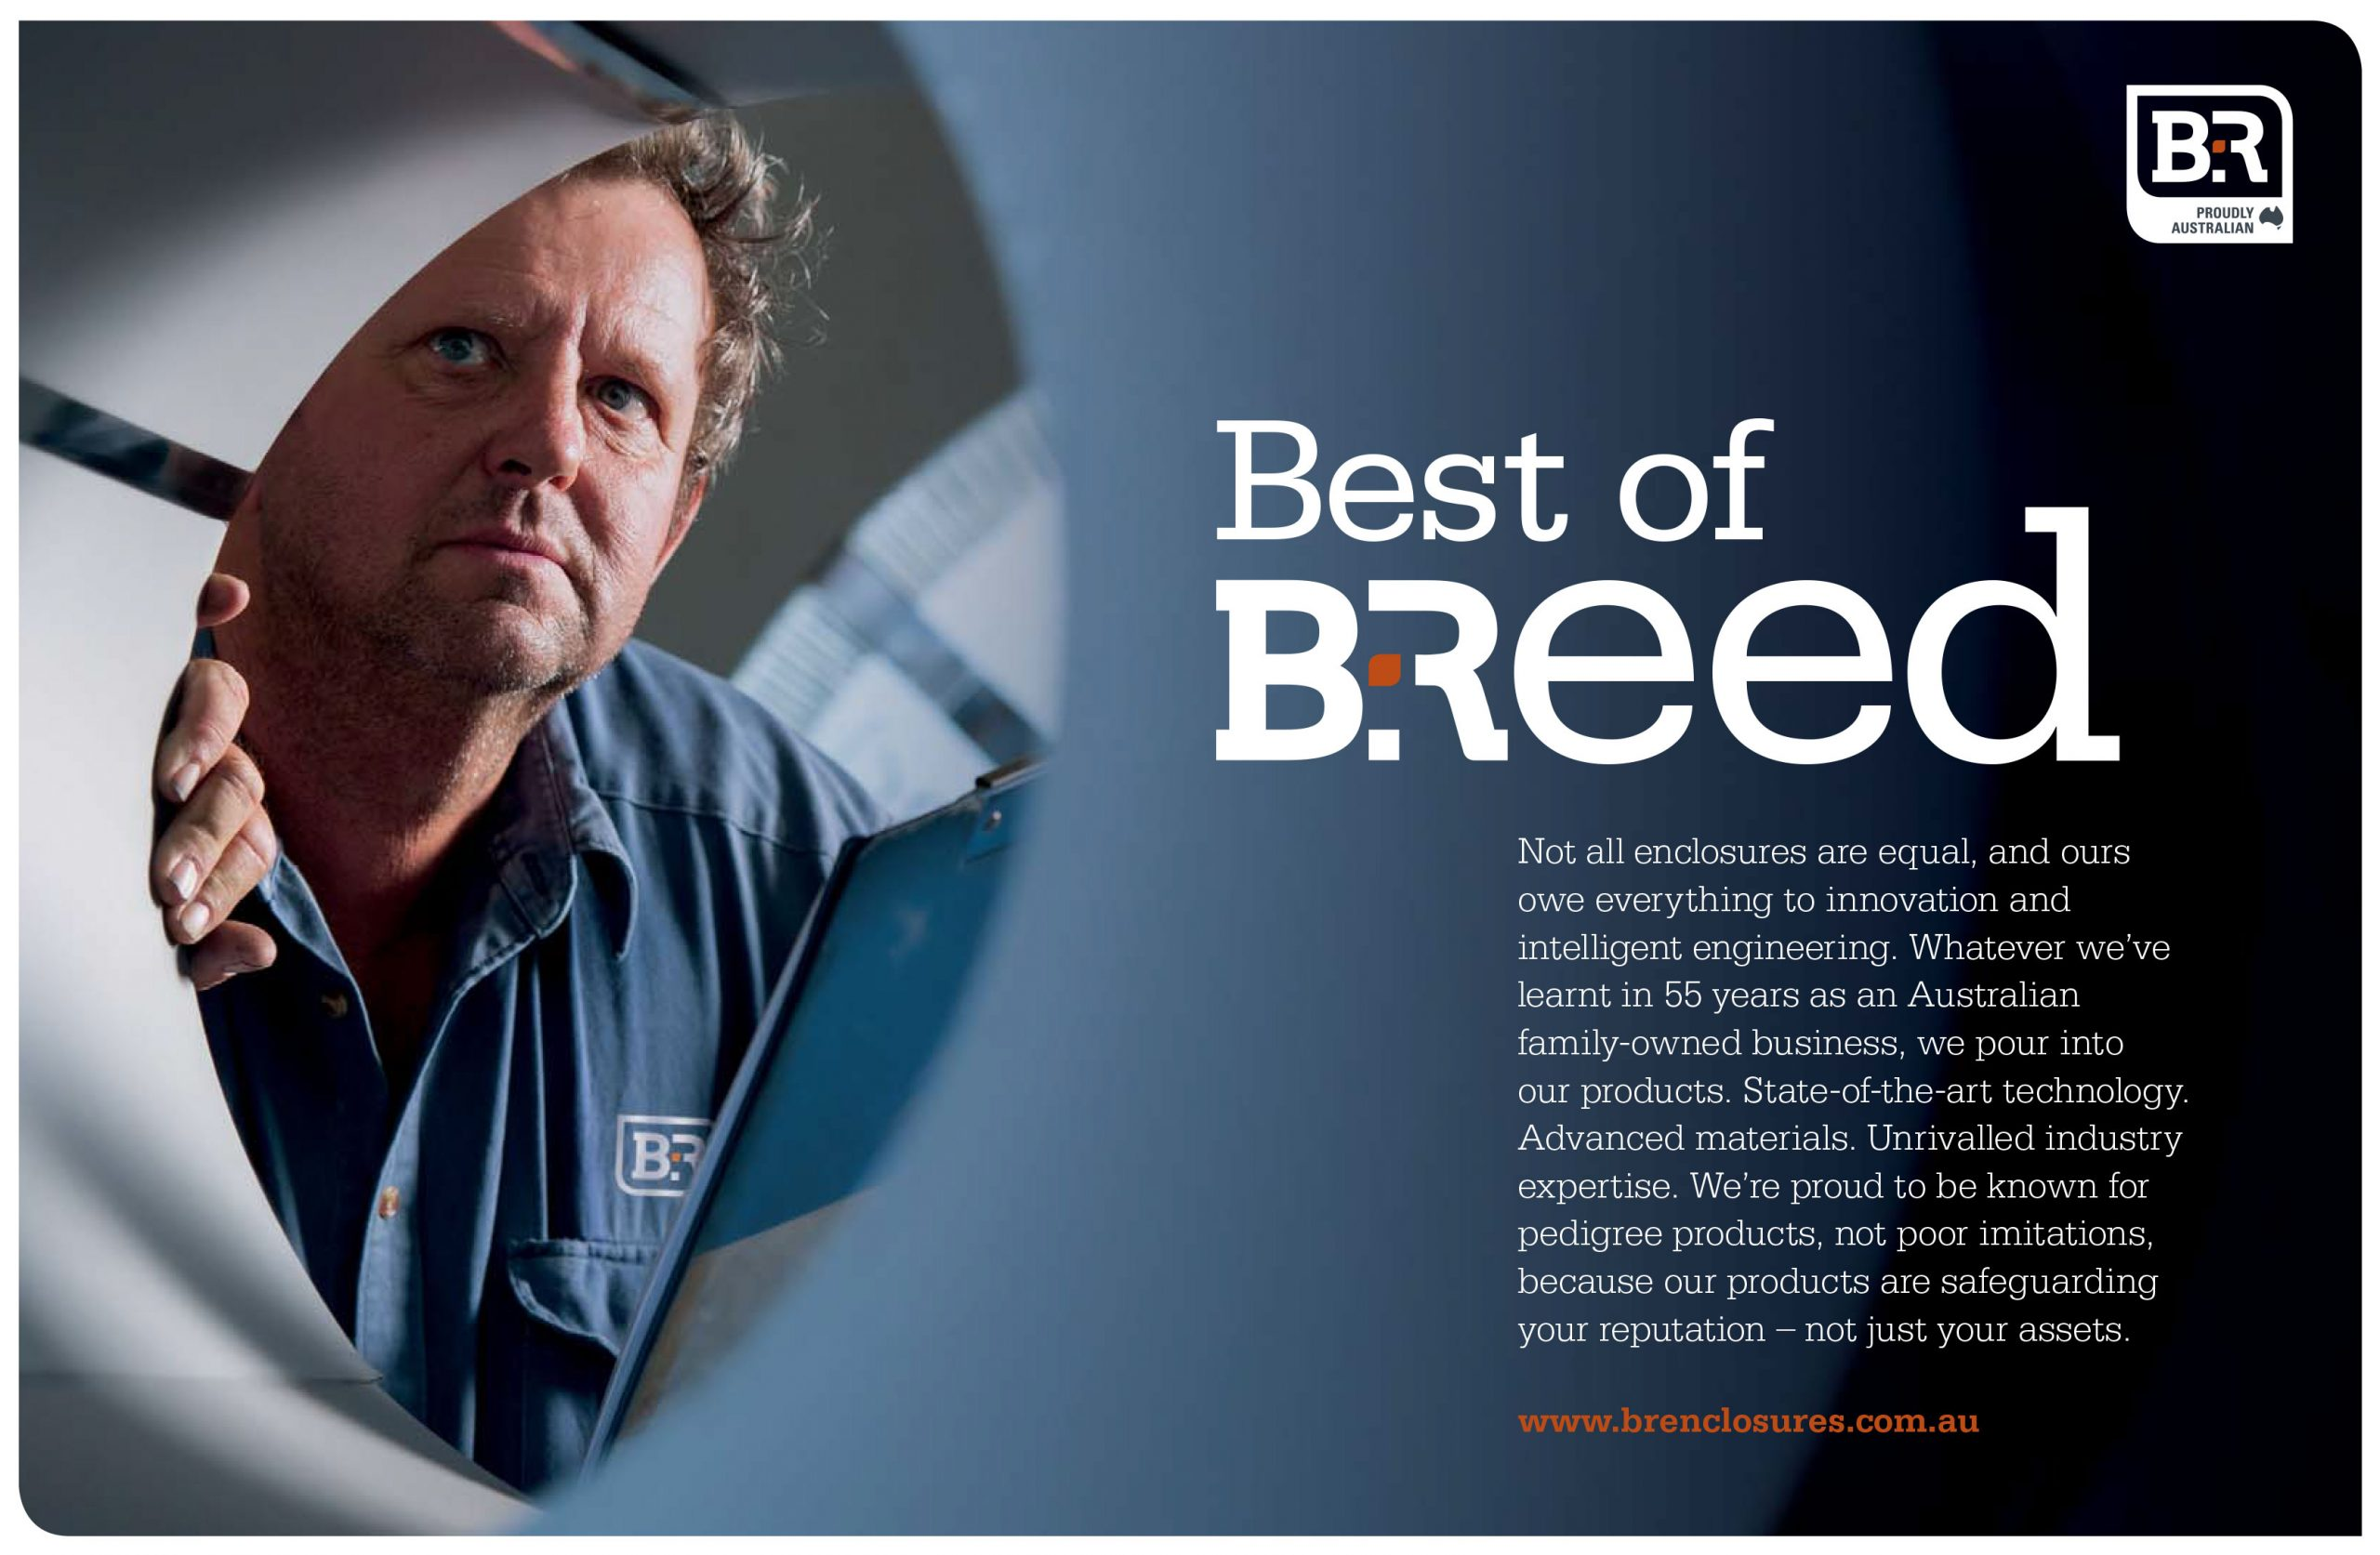 Best of breed B&R poster